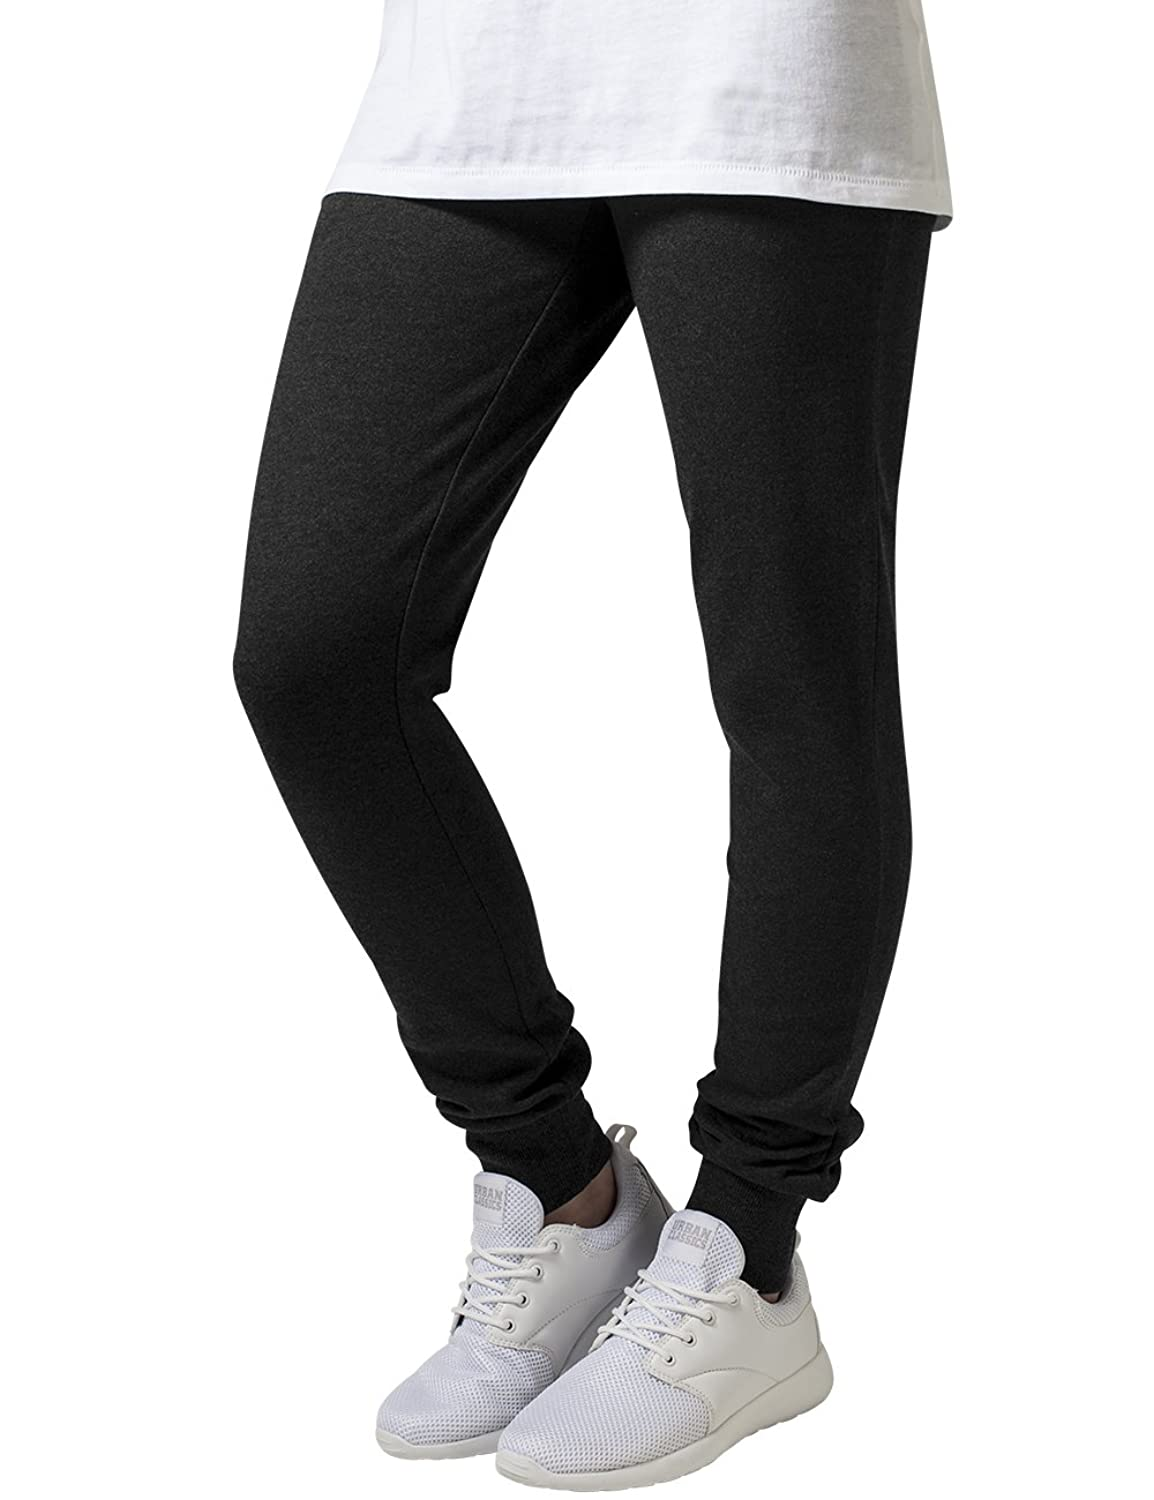 Womens Ladies Fitted Athletic Pants Trousers Urban Classic Outlet Footaction Free Shipping Official Site Best Seller Sale Online Discount Top Quality sKQUd